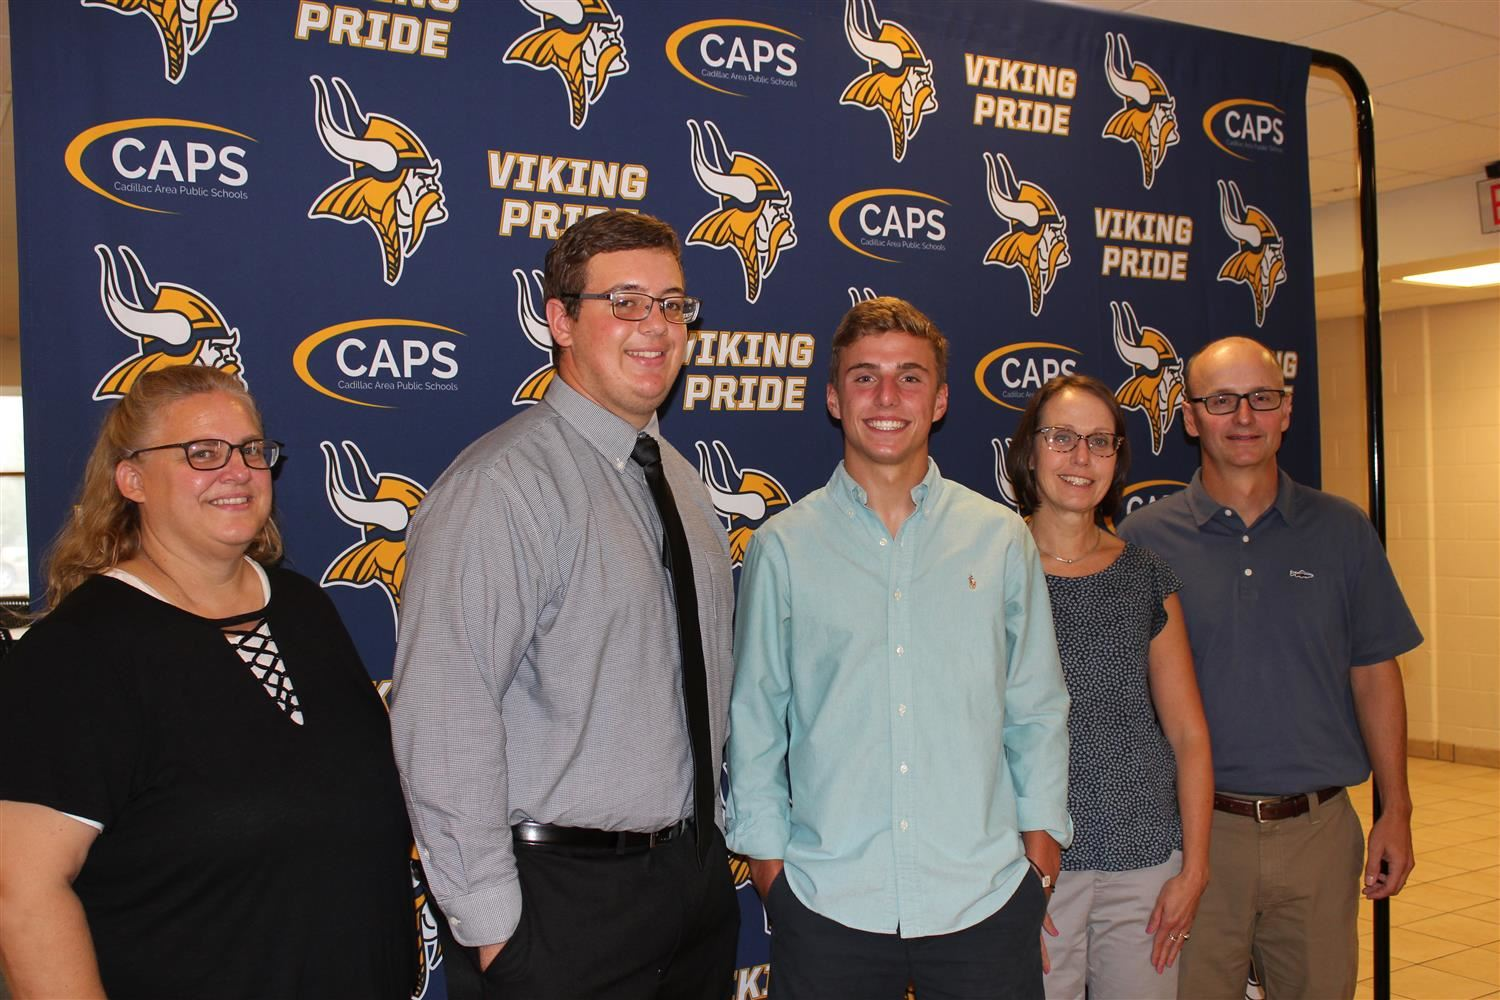 National Merit Scholar Semi Finalists Ethan Pritchard and Alix Netzly